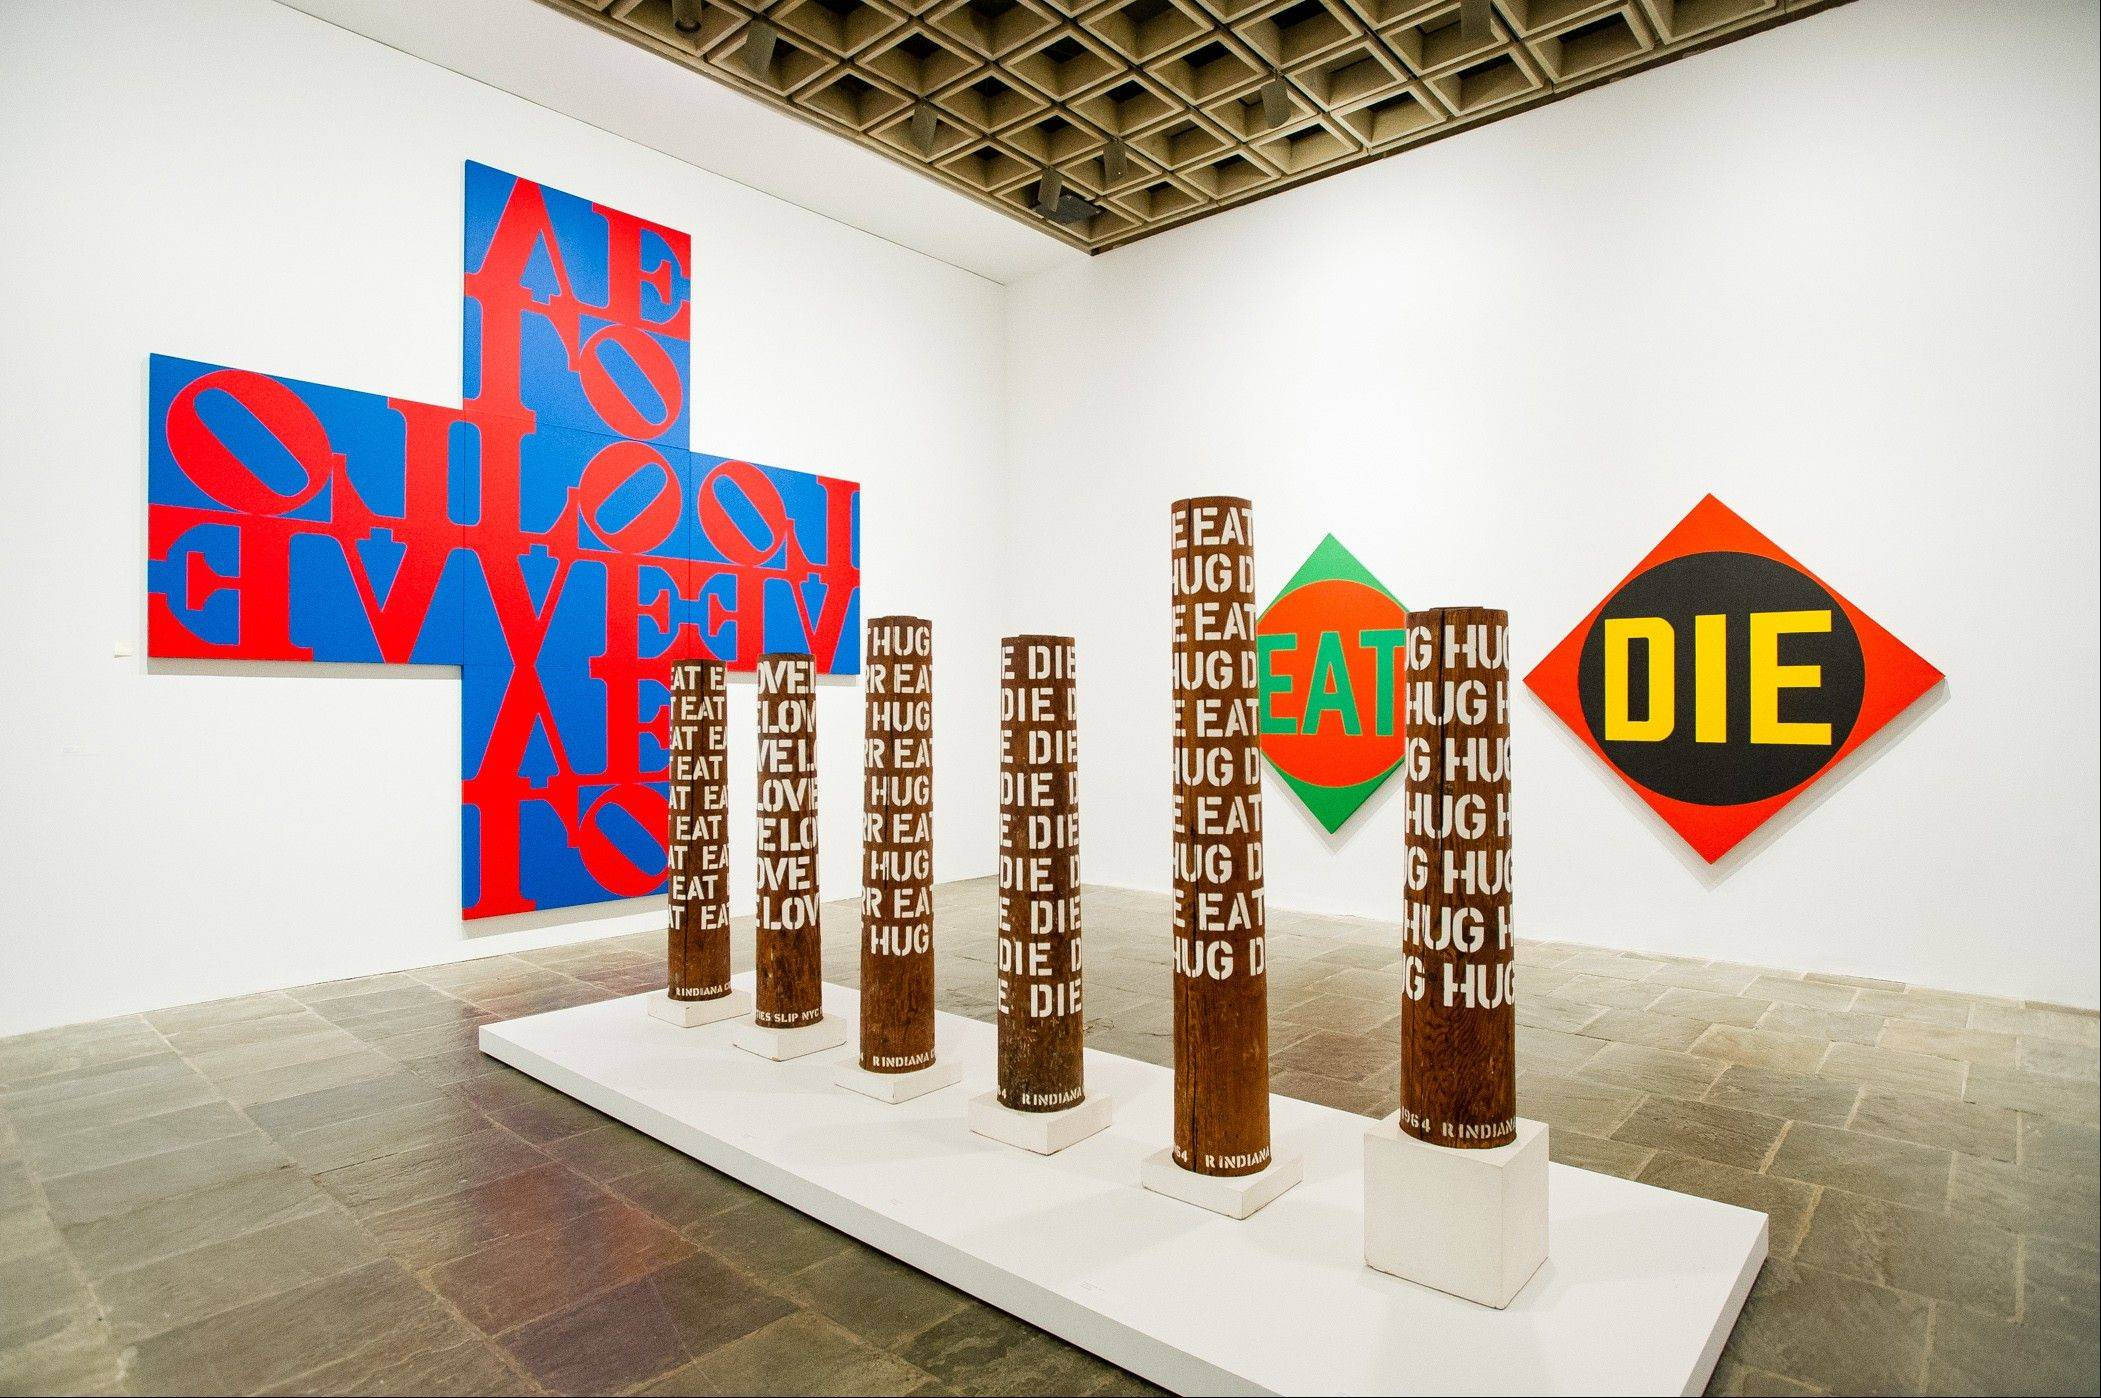 In the Robert Indiana exhibition in New York, there's a LOVE painting in the form of a cross and a small aluminum model that served as a template for all his other LOVE pieces.